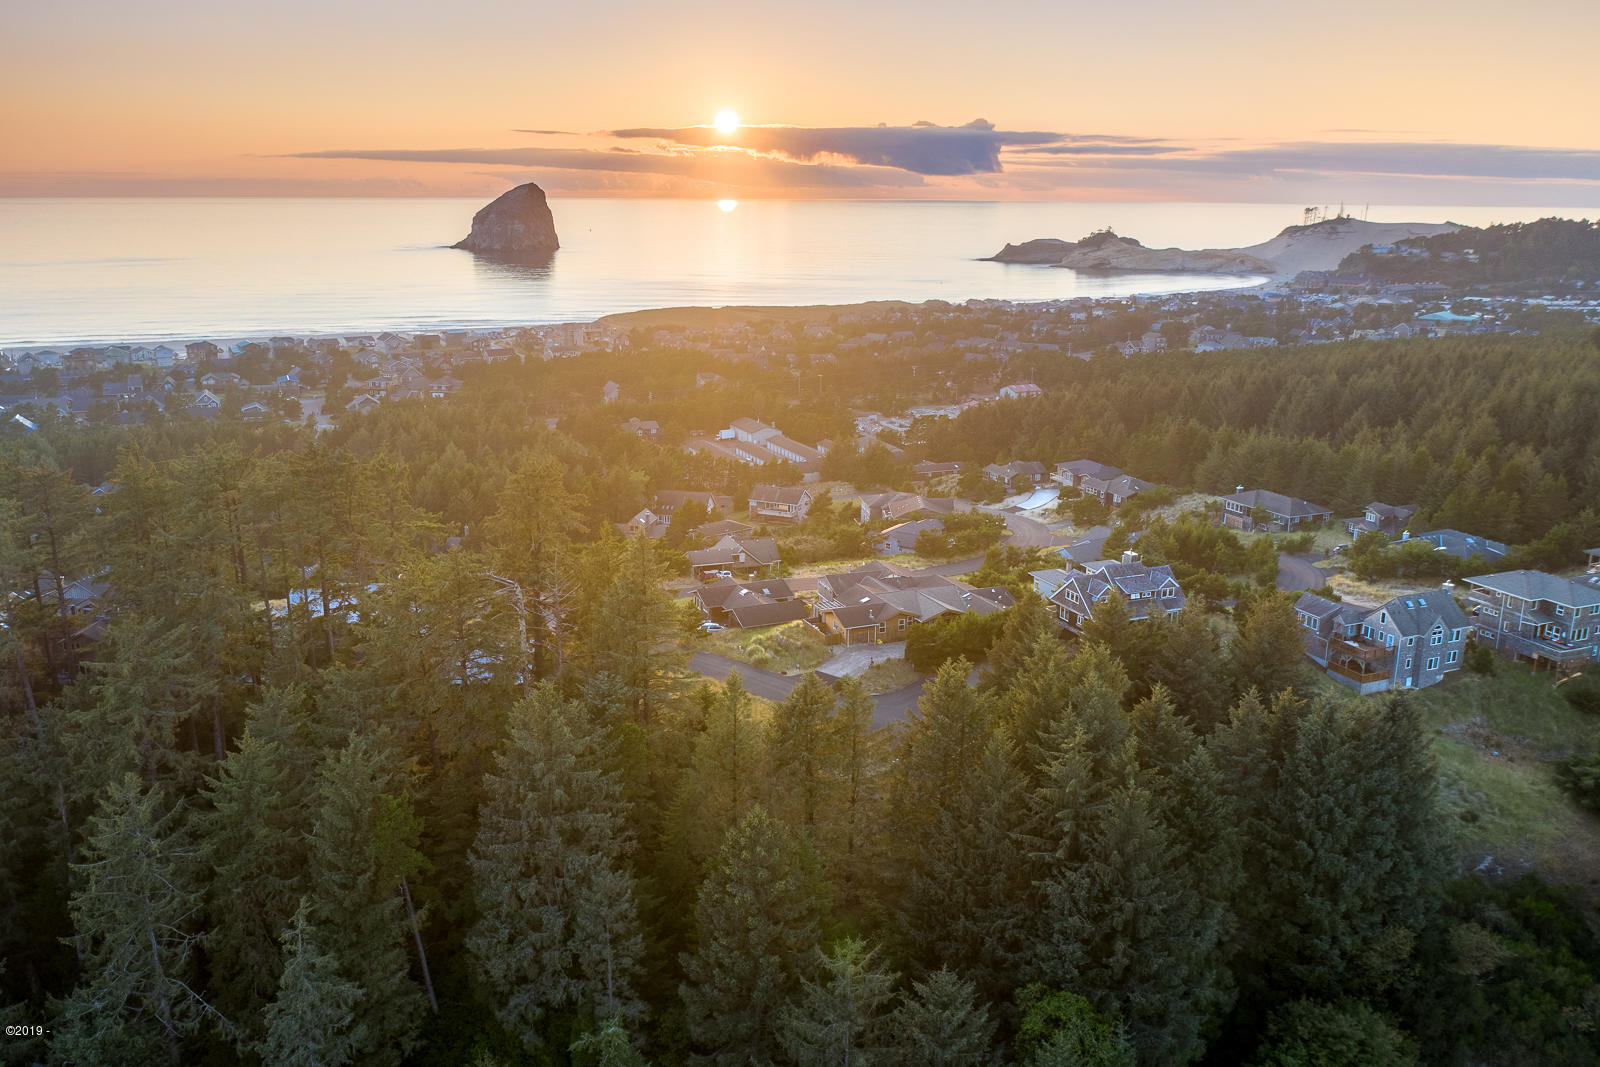 VL 89 Riptide Dr., Pacific City, OR 97135 - Drone shot